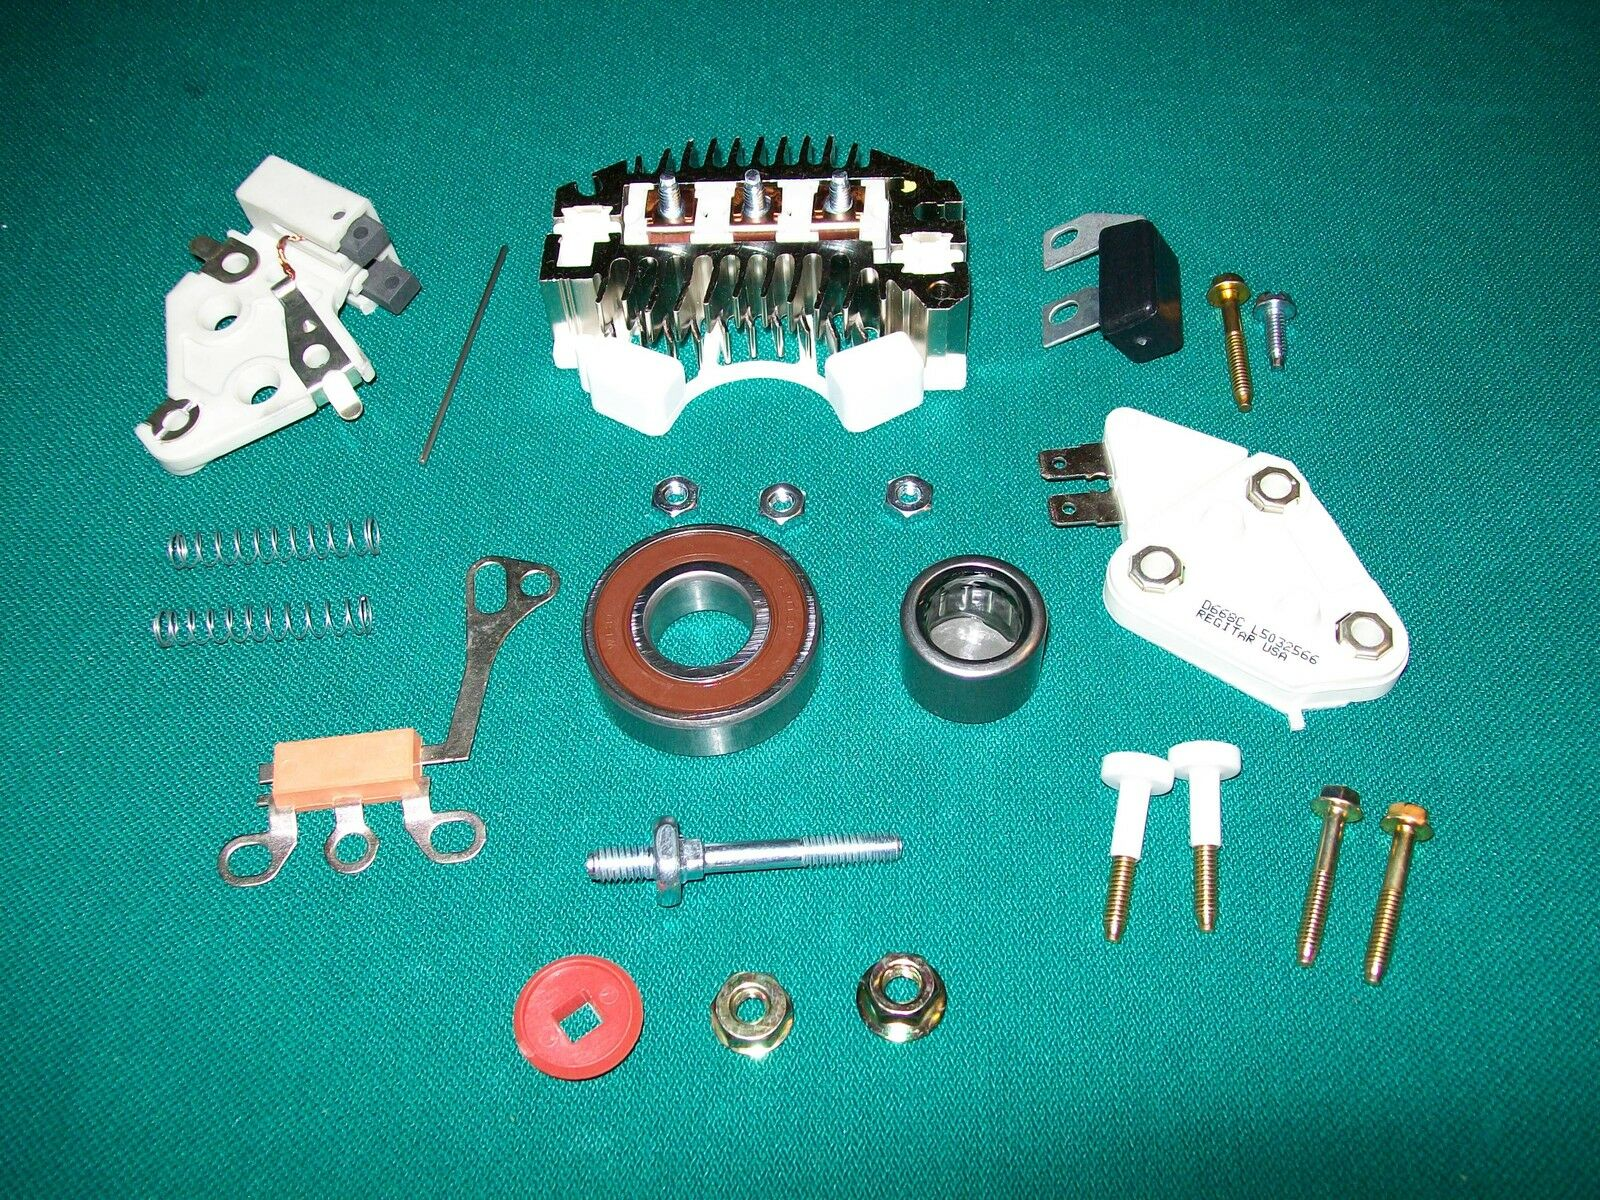 12si Delco Alternator Rebuild Kit 78 94 Amp Chevy Truck Pontiac Wiring 86 Oldsmobile Delta 88 Buick Olds Gm 1 Of See More